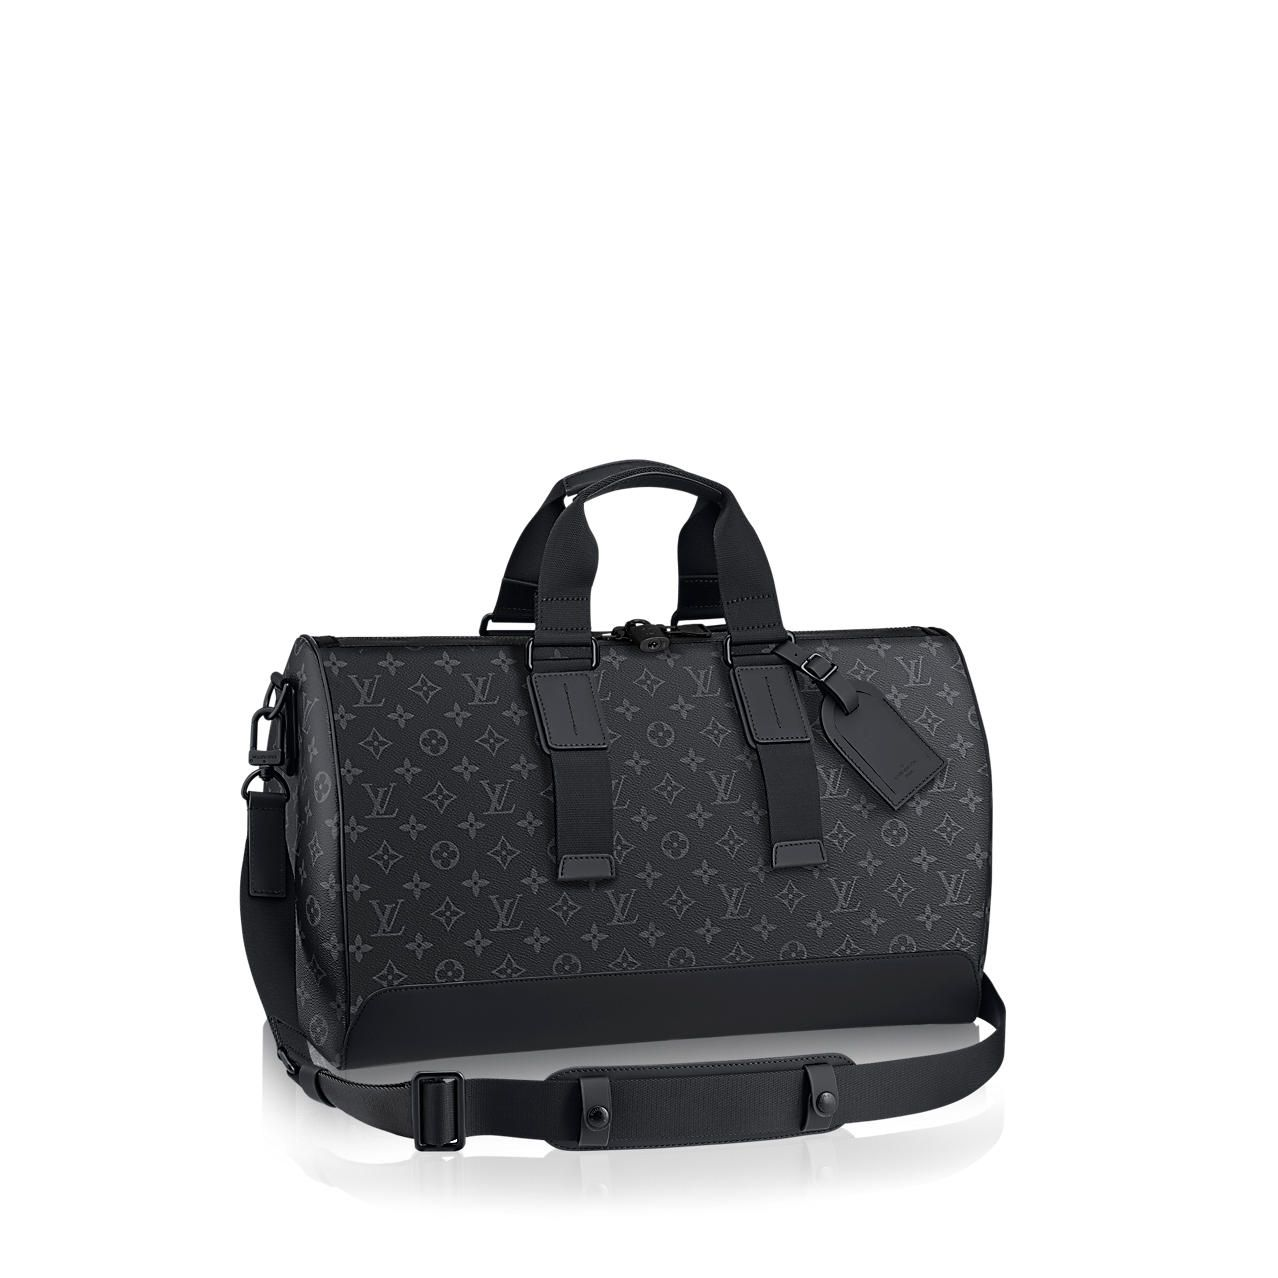 2a8ce5391 Discover Louis Vuitton Keepall Voyager: Inspired by the iconic Keepall, the Keepall  Voyager has a more supple feel and a sportier look thanks to the leather ...